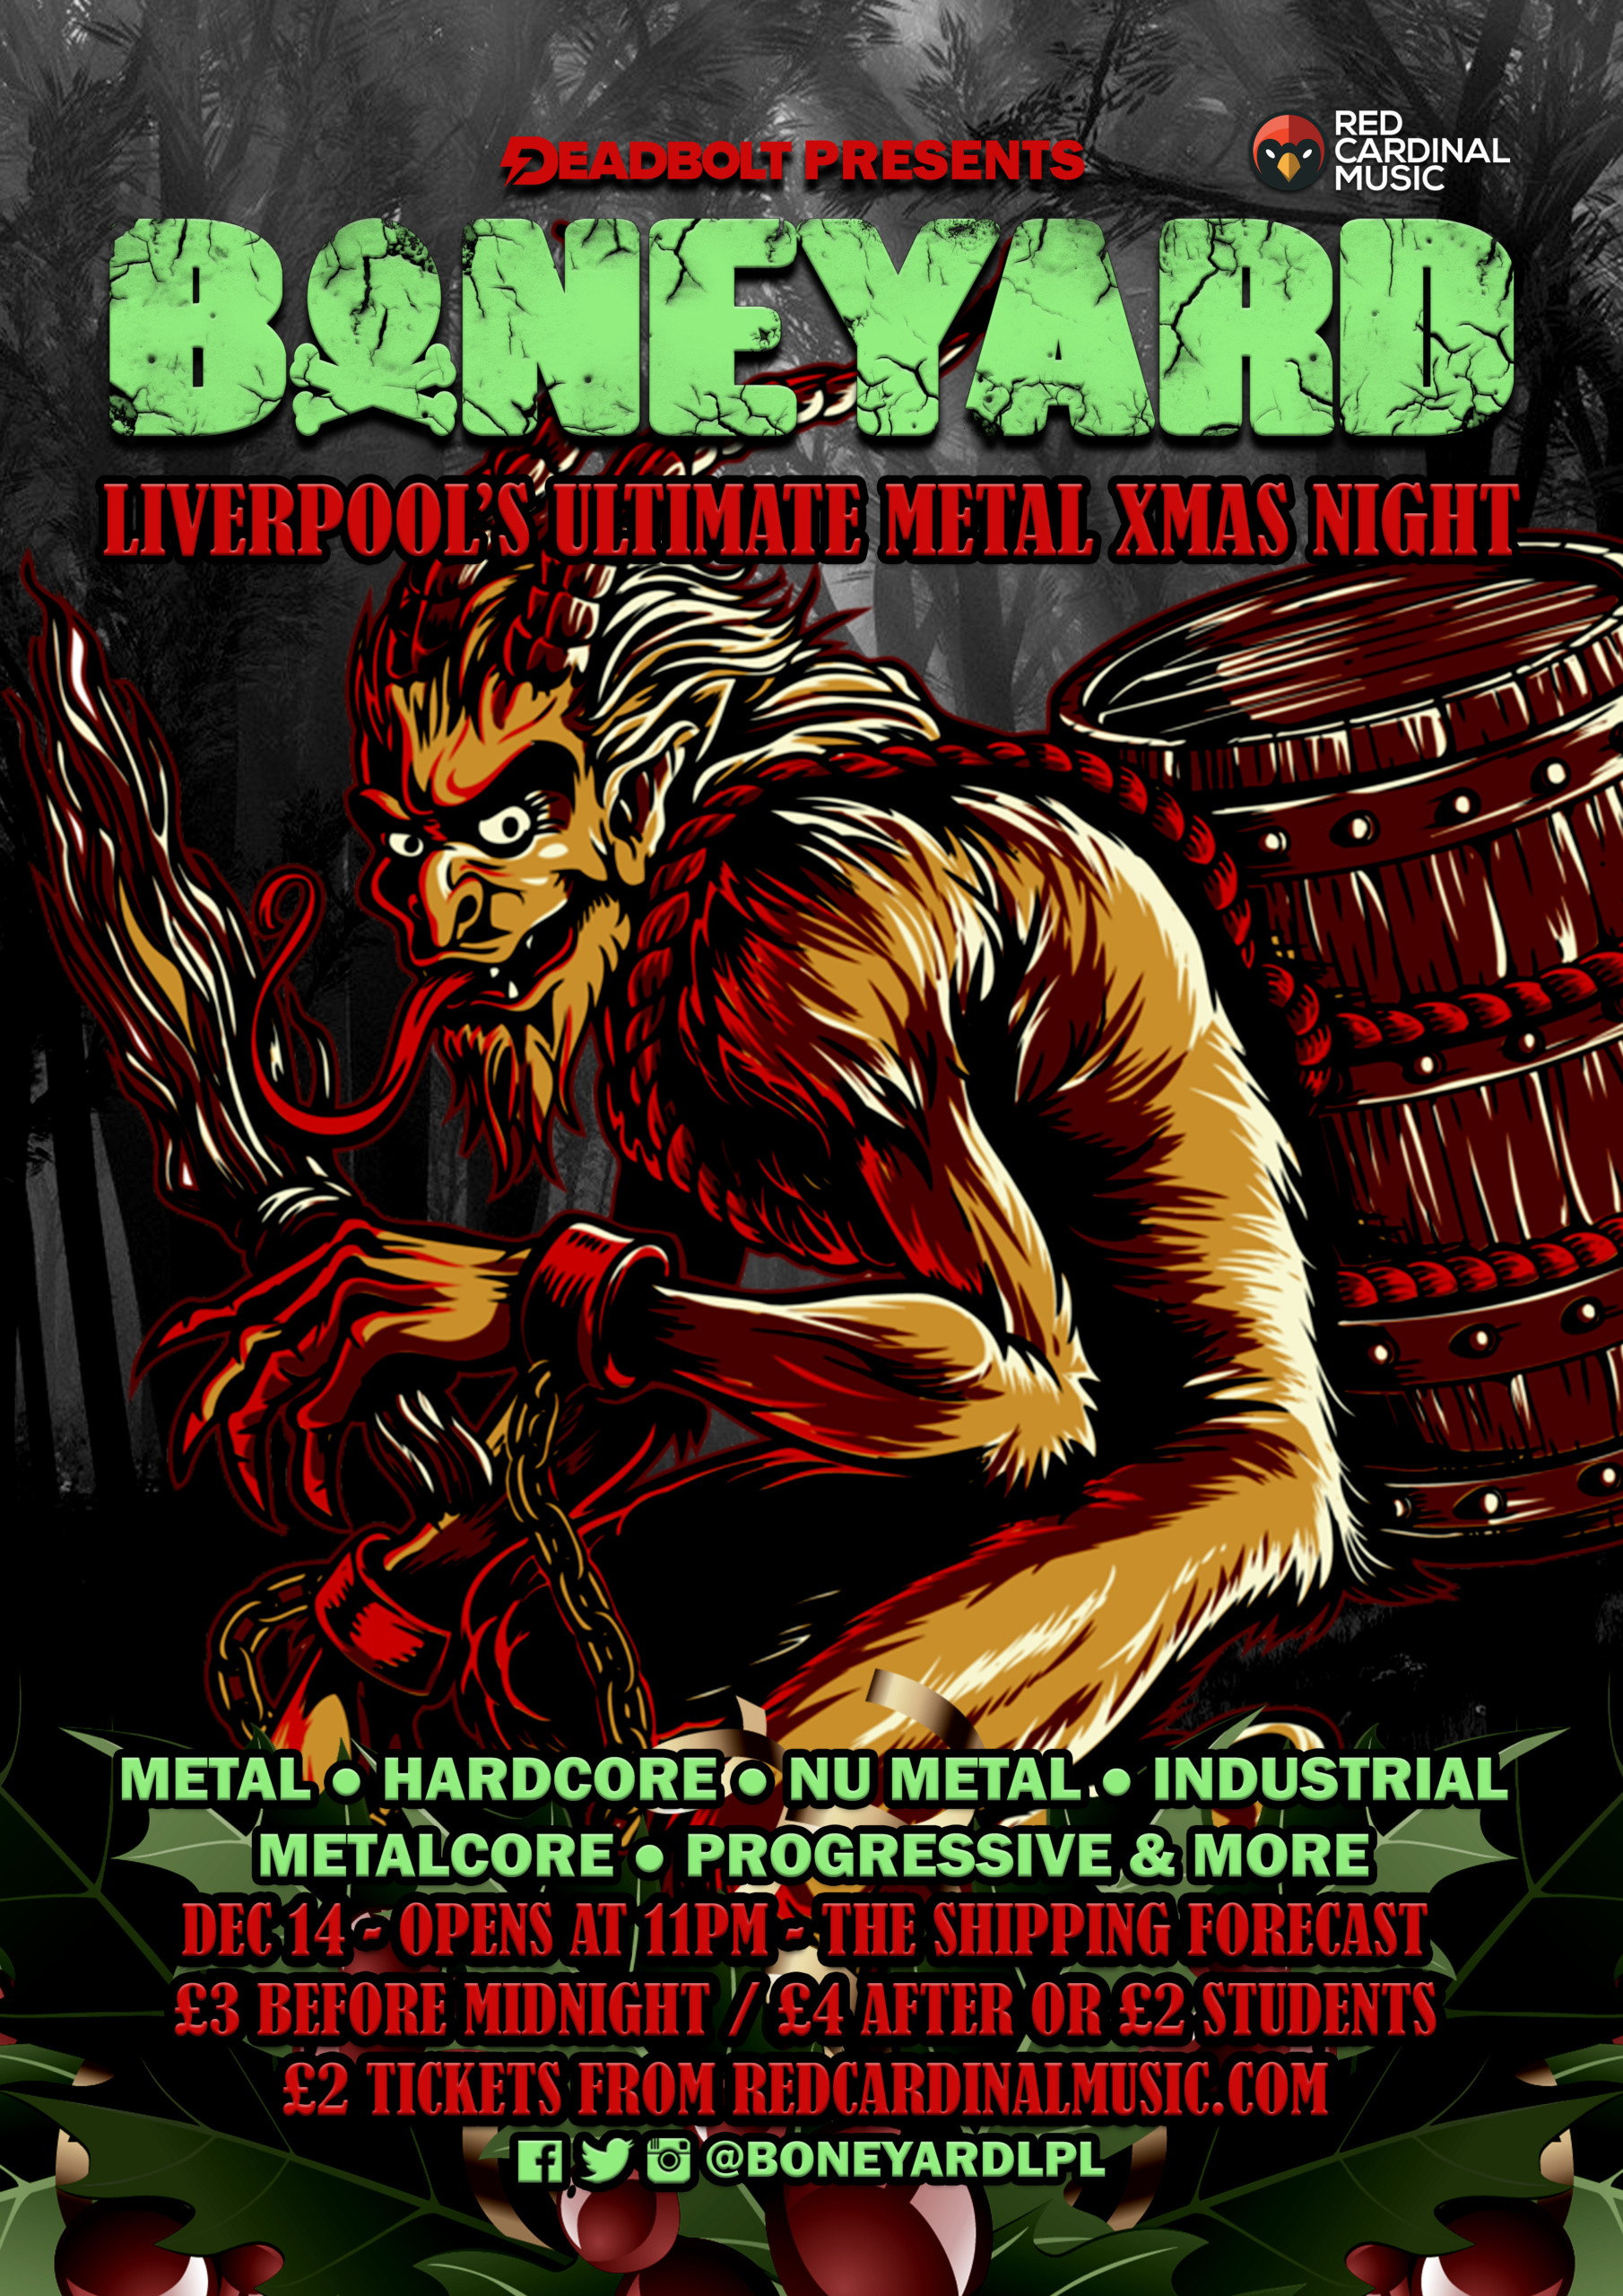 Boneyard Christmas Metal Night - Shipping Forecast Liverpool - Dec 19 - Poster - Red Cardinal Music